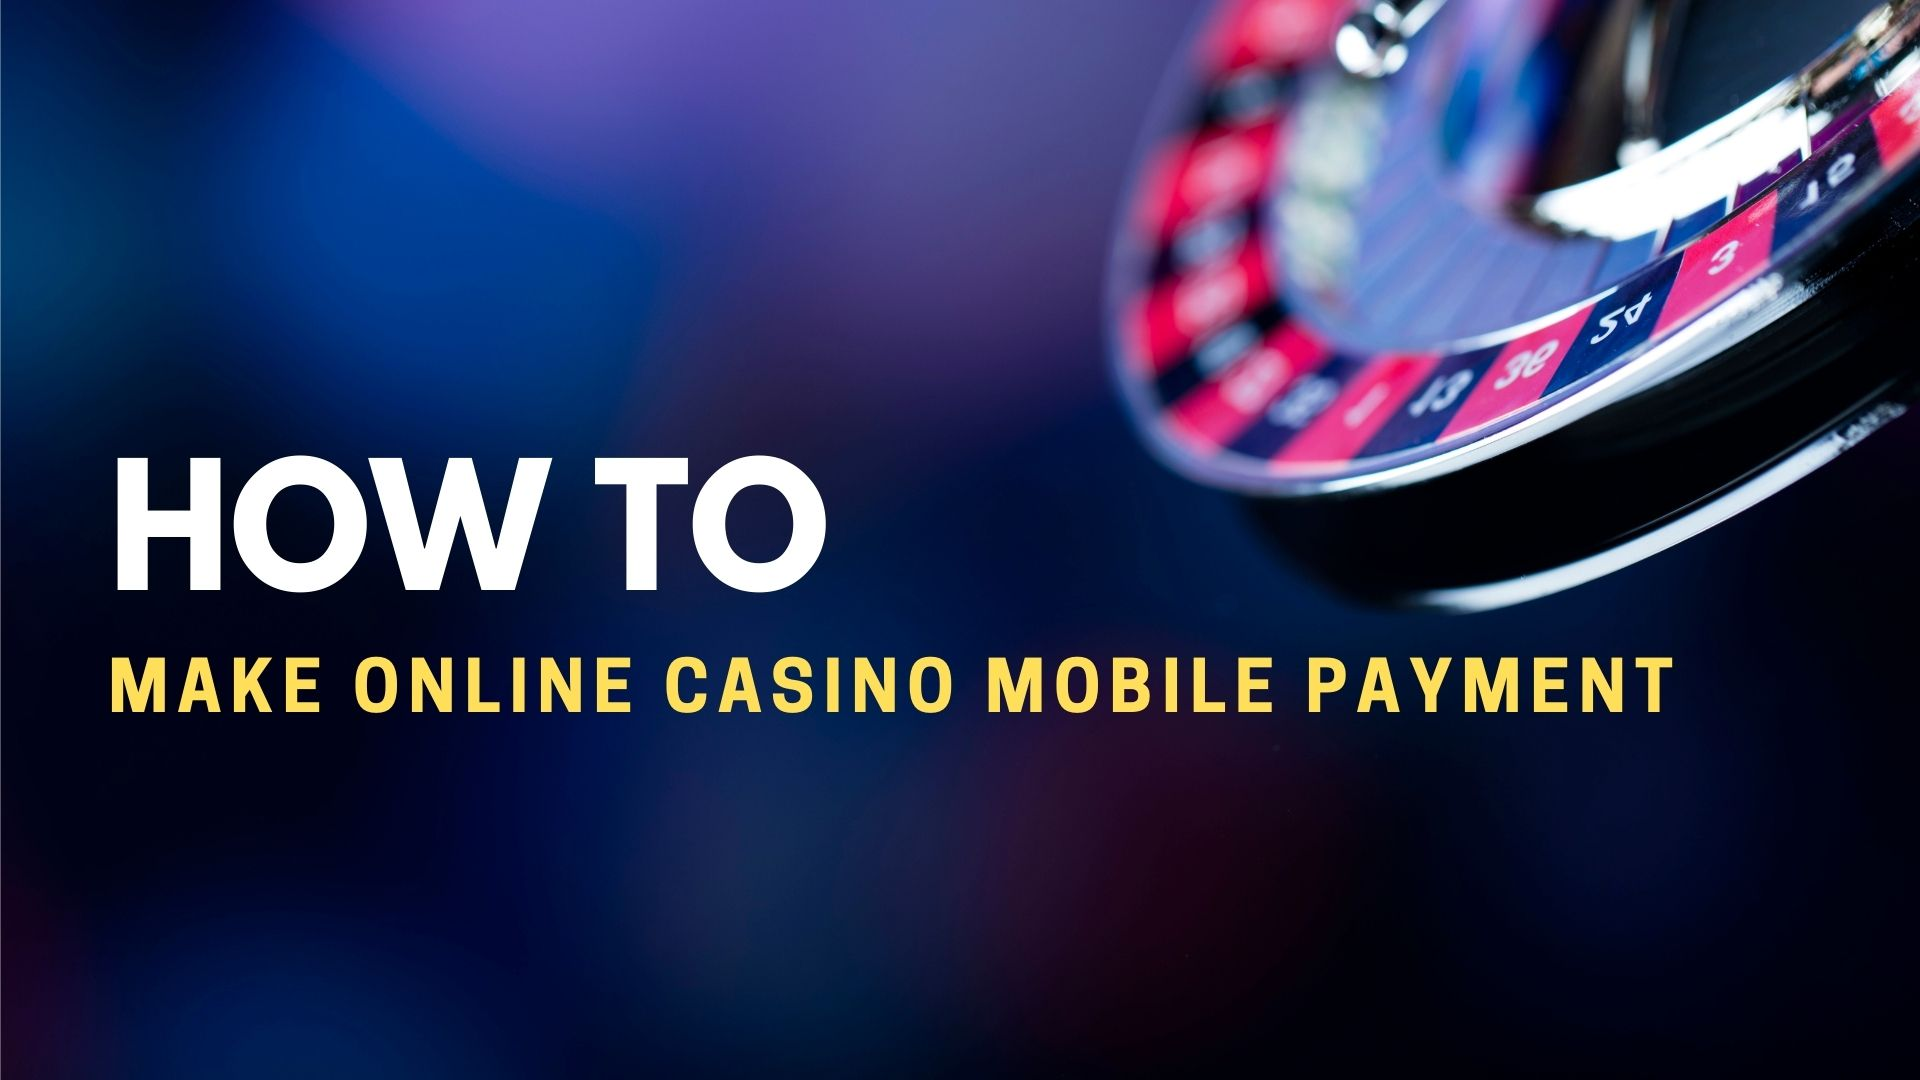 How To Make Online Casino Mobile Payment